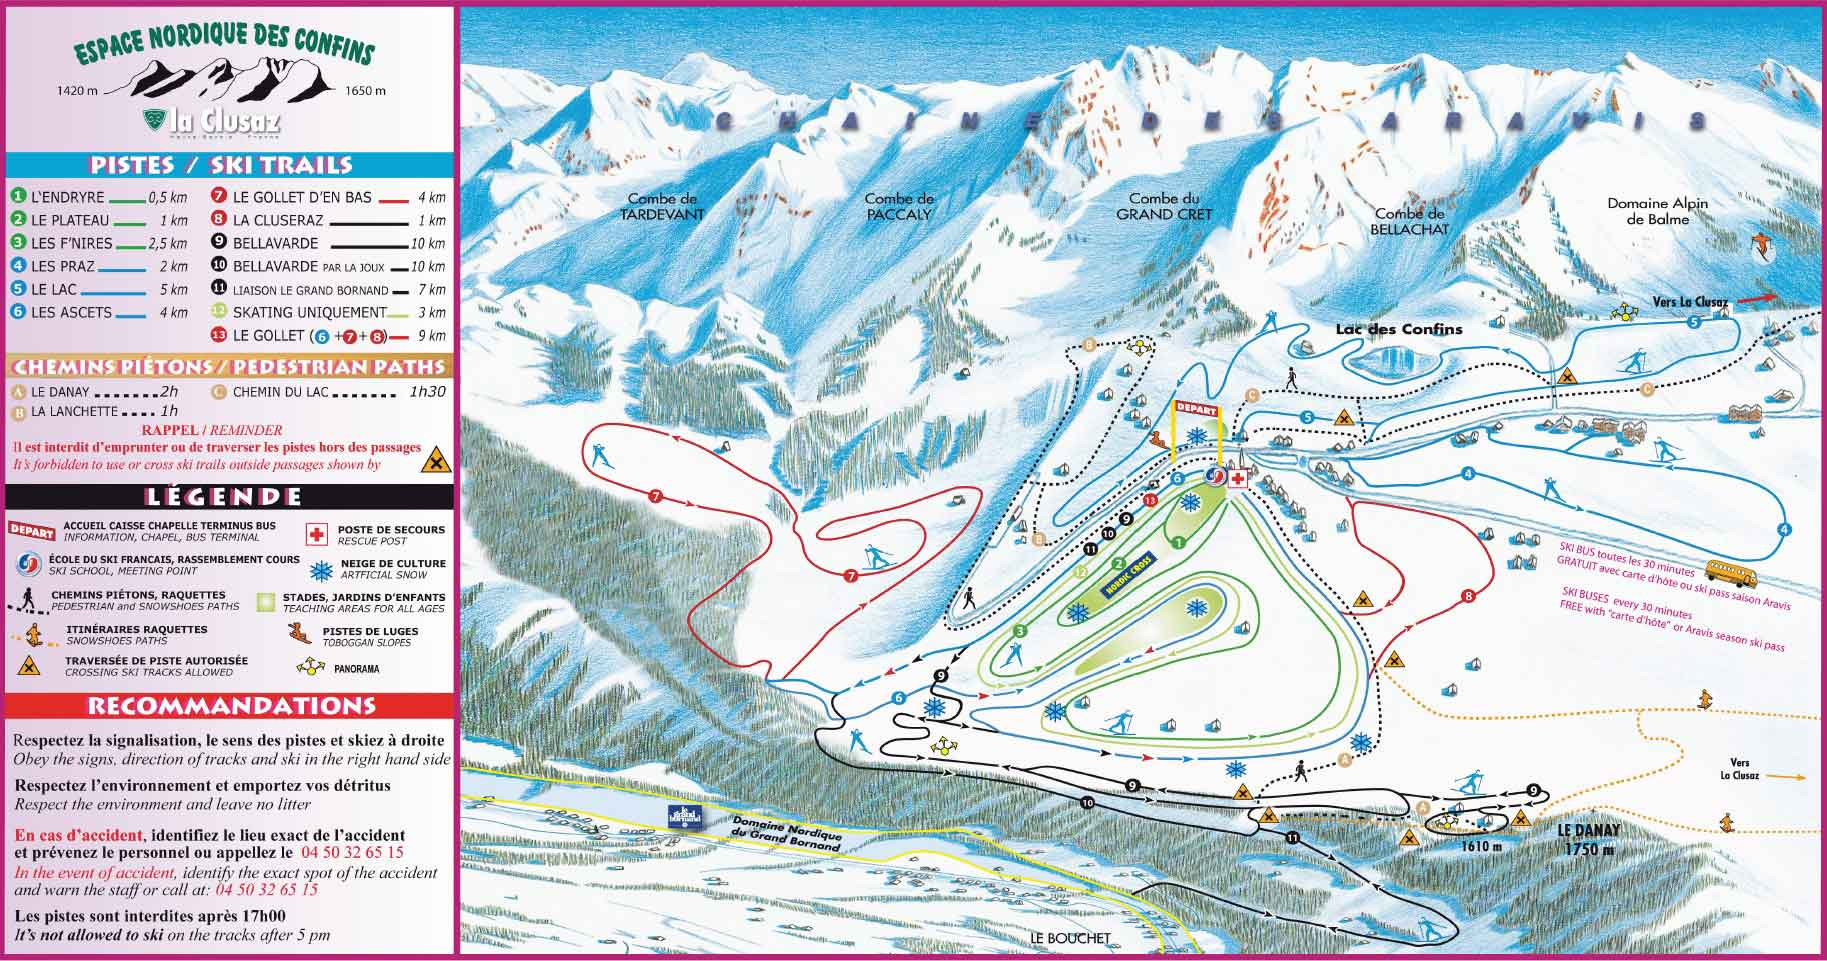 La Clusaz crosscountry skiing piste map Alpskicom